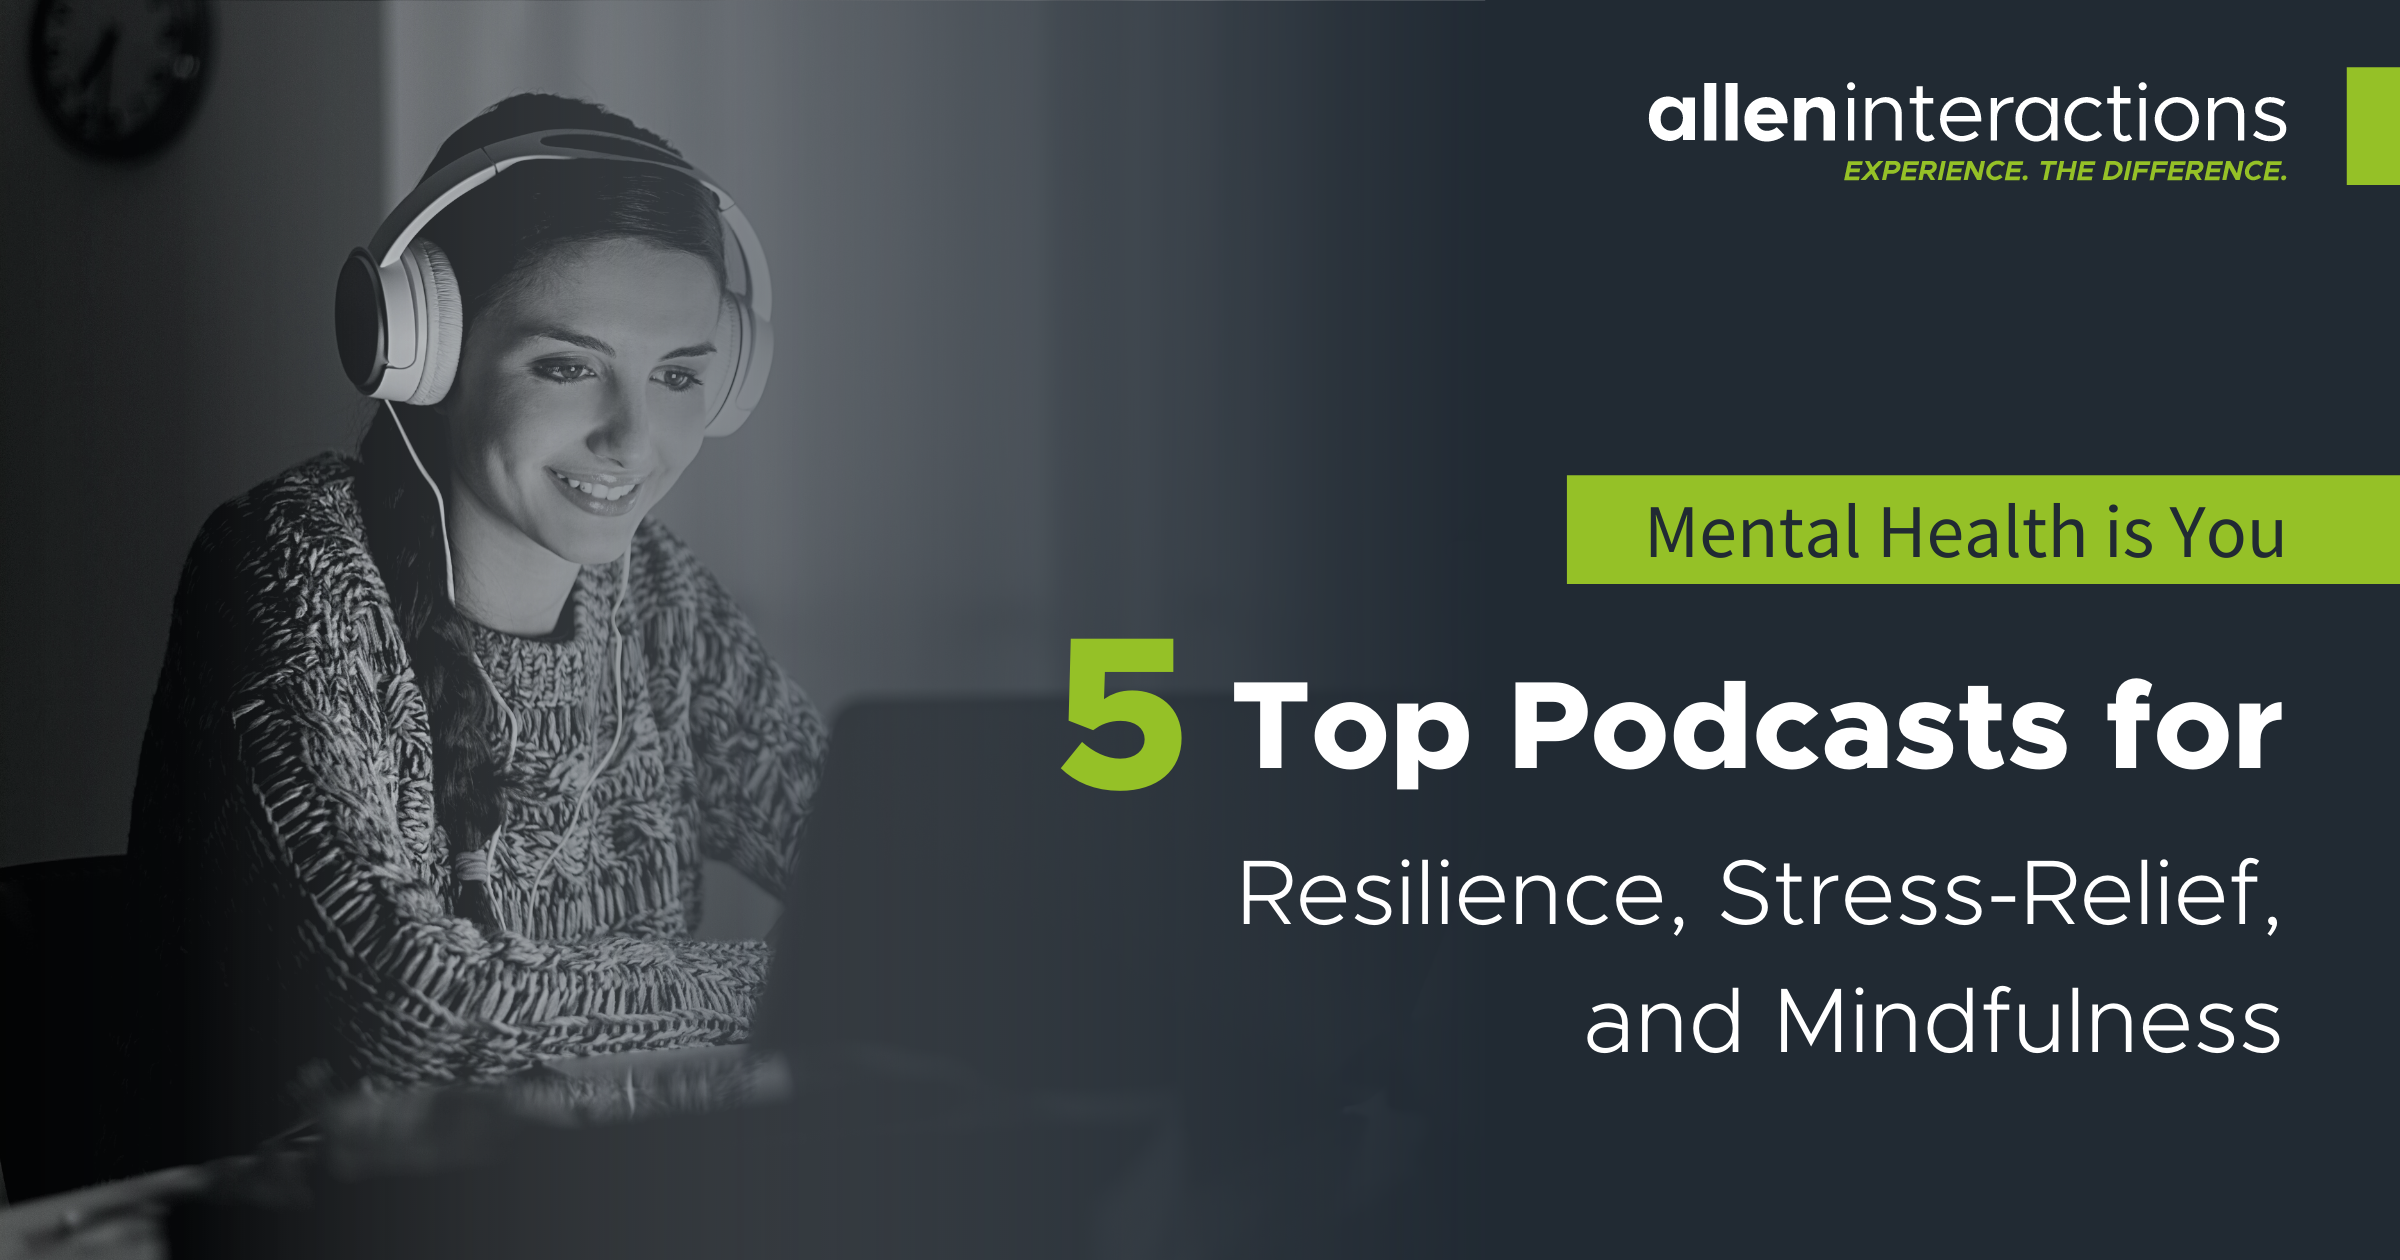 Mental Health is You - 5 Top Podcasts for Resilience, Stress-Relief, and Mindfulness